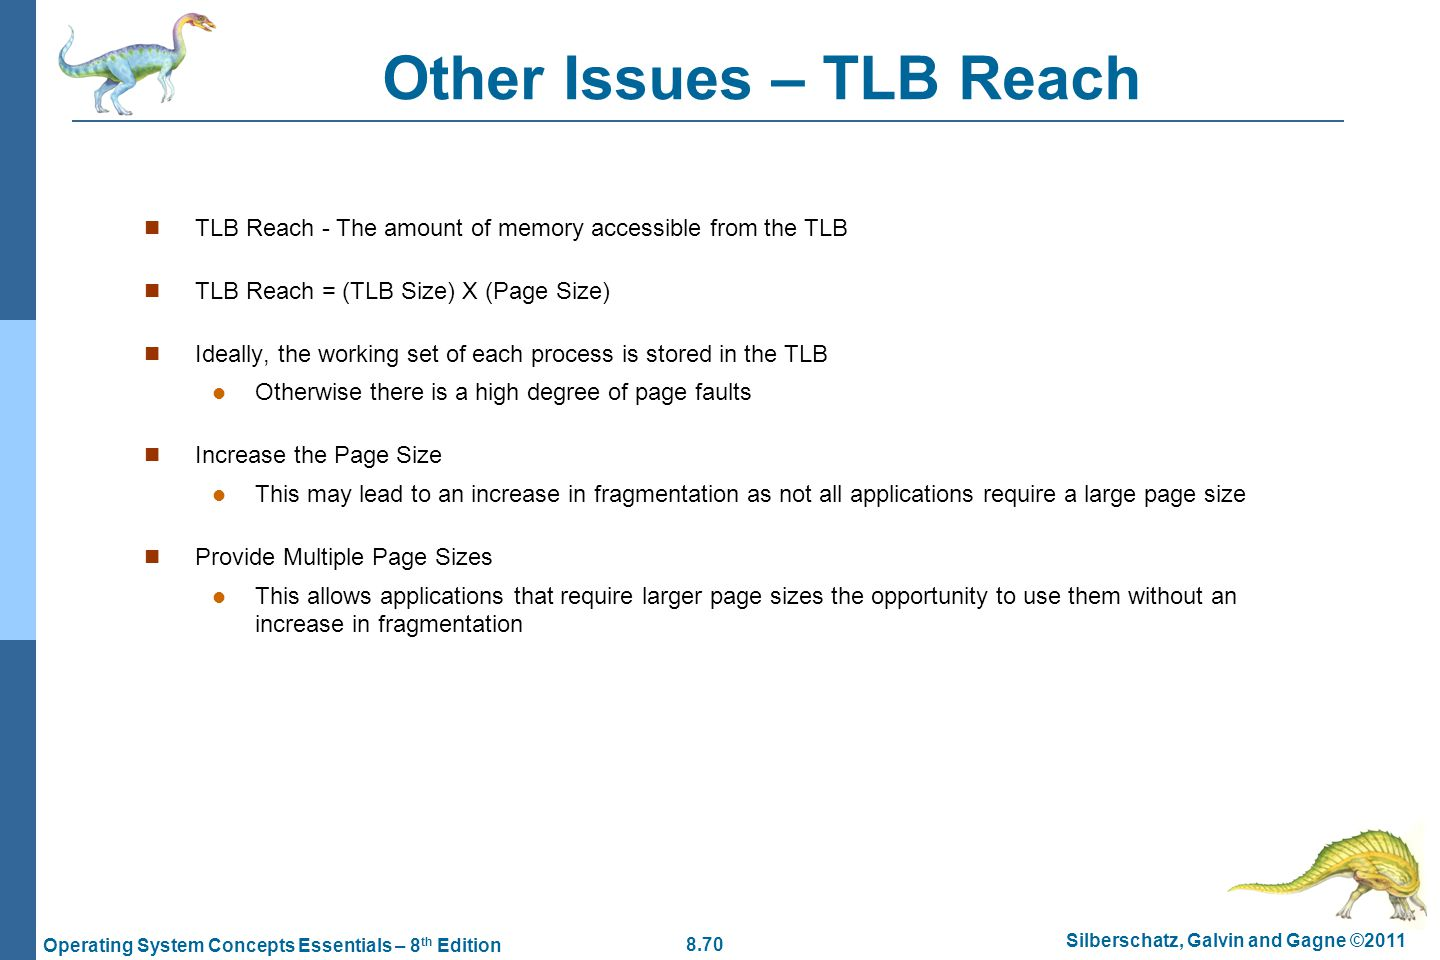 Other Issues – TLB Reach